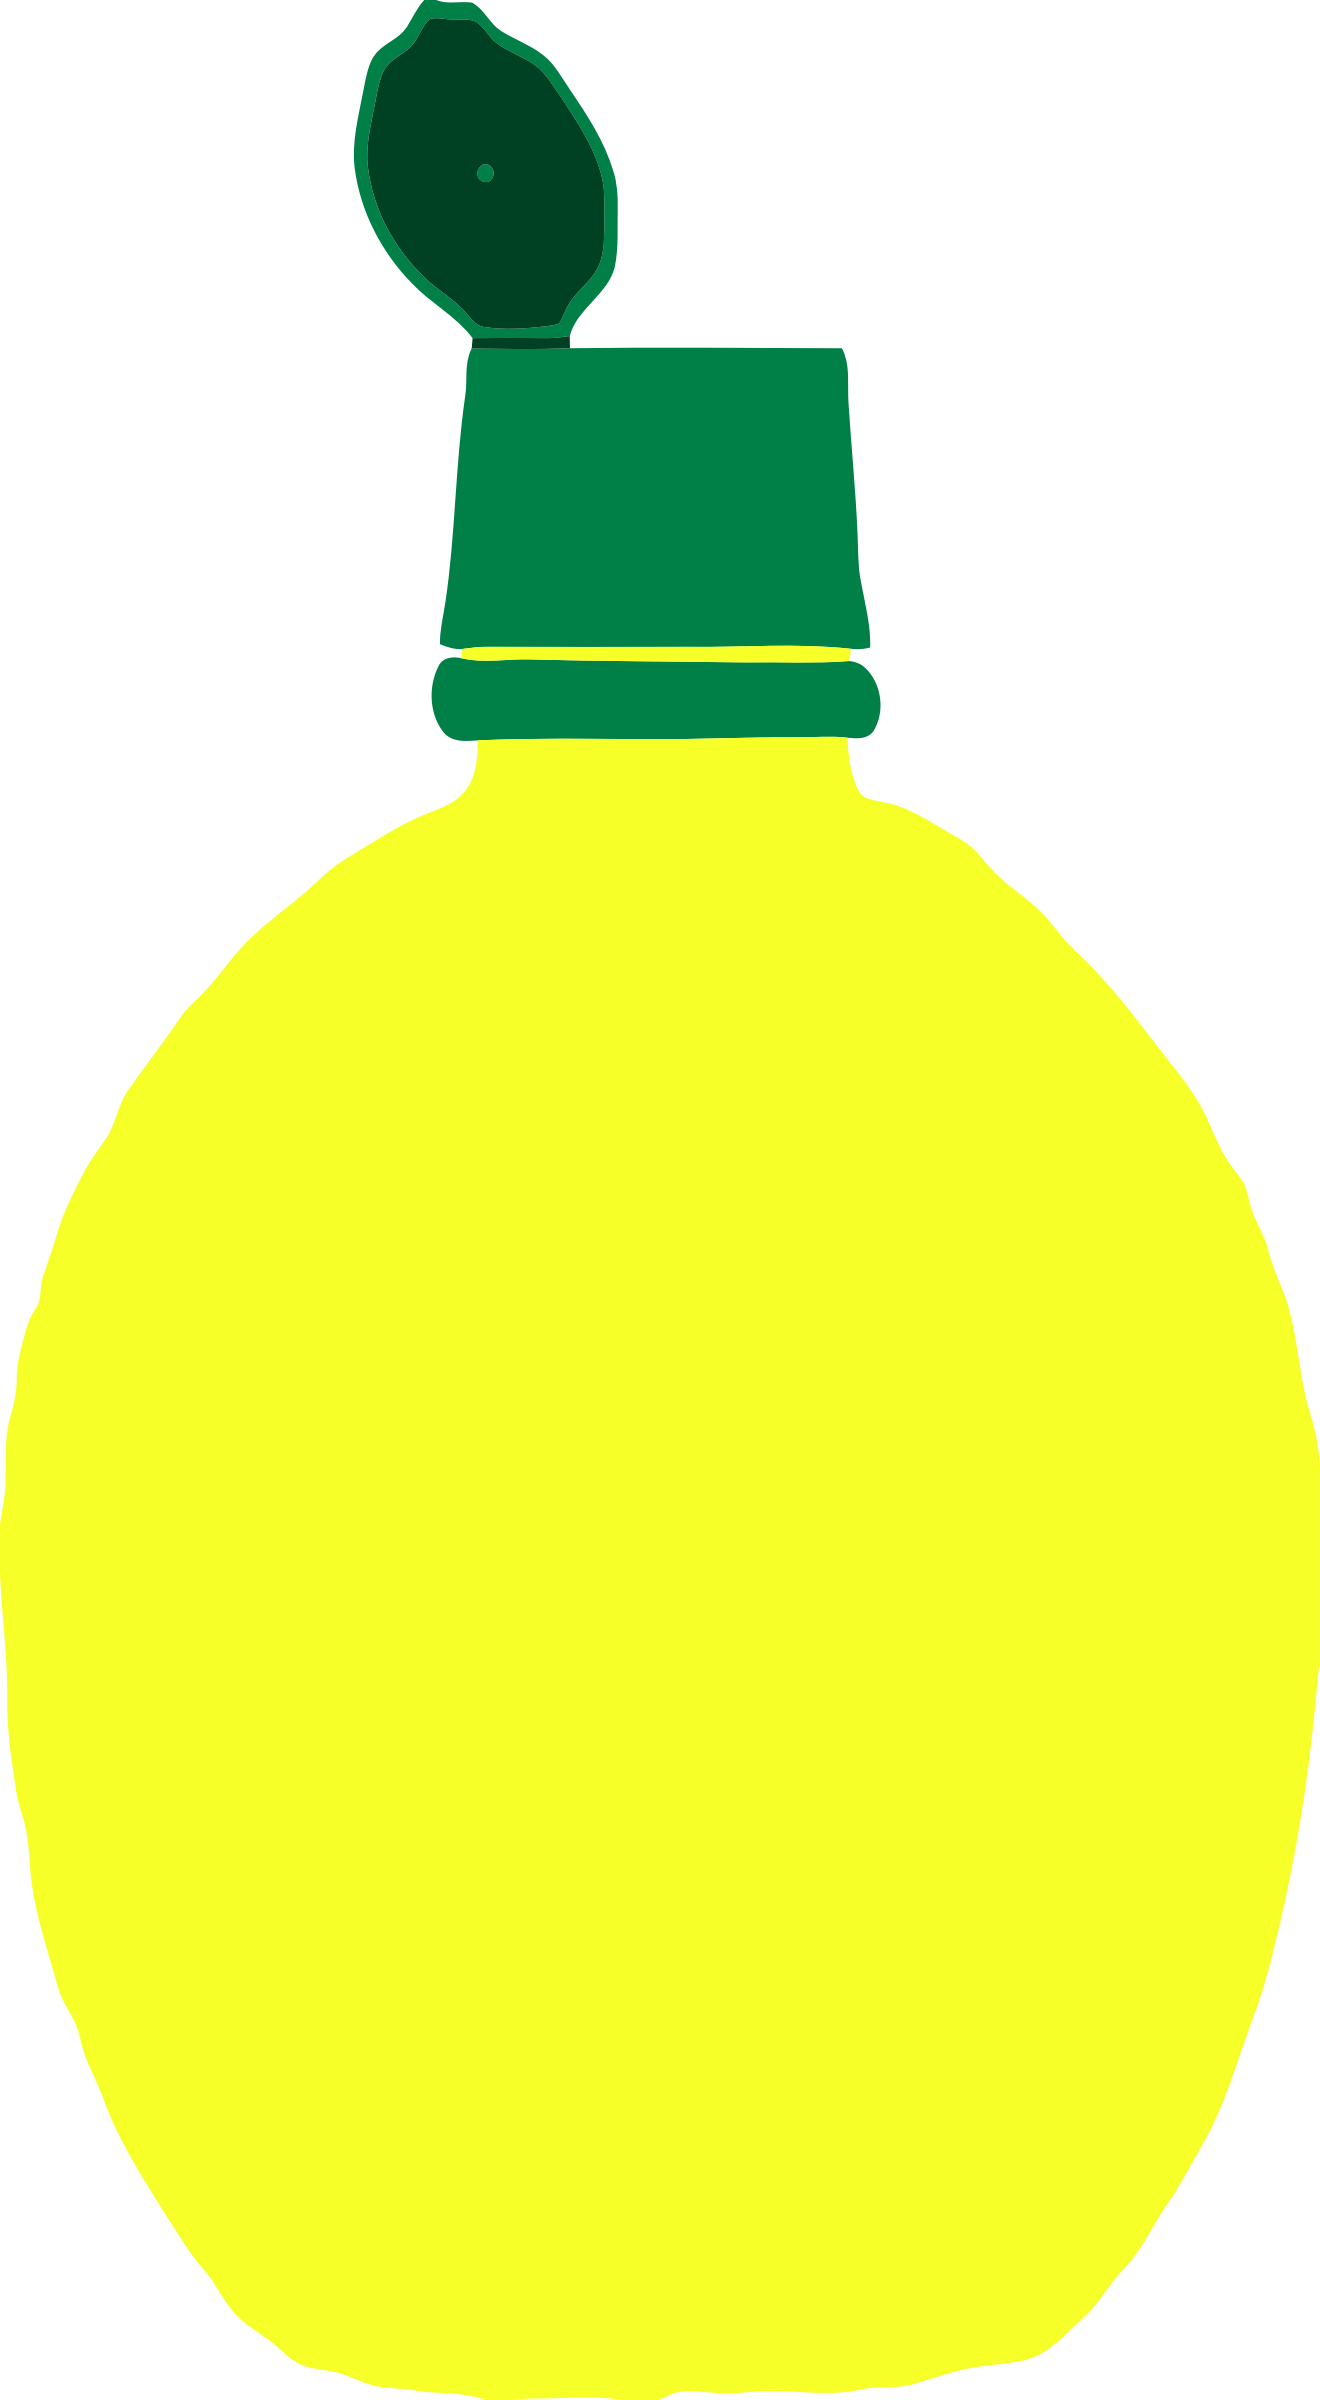 Lemon squeeze big image. Water clipart juice